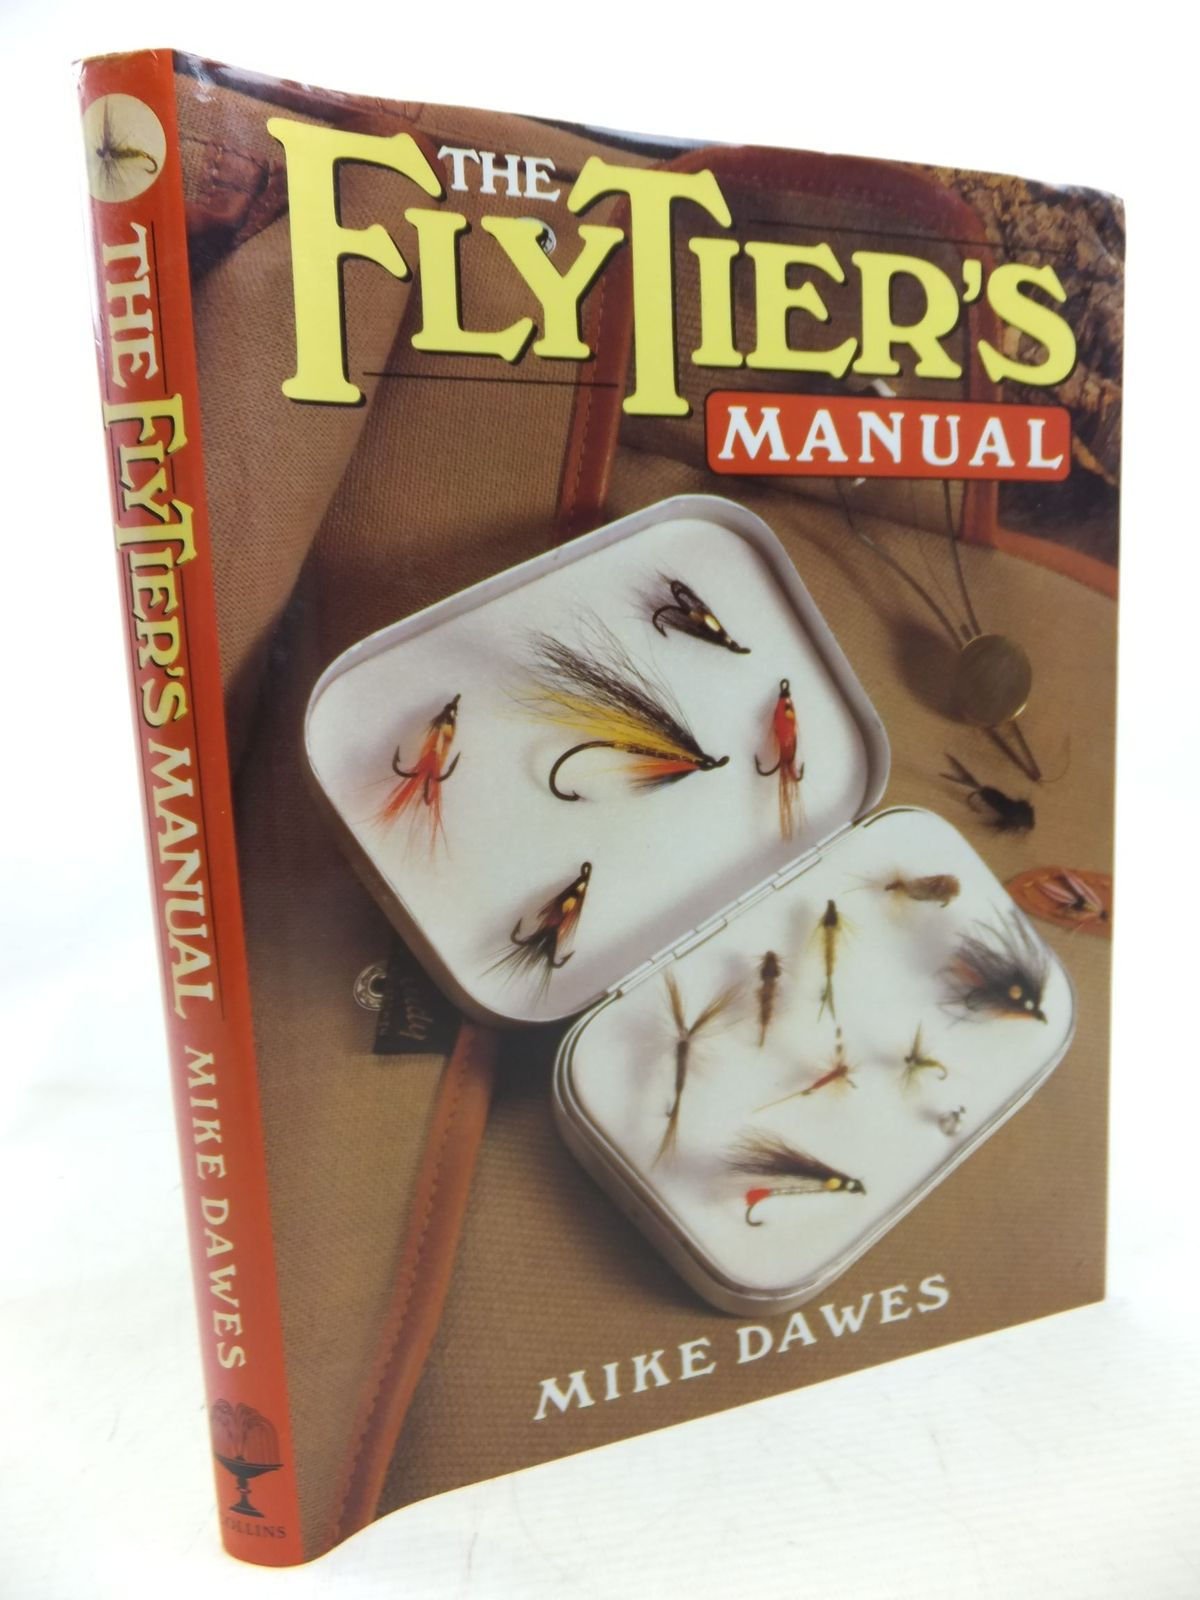 Photo of THE FLY TIER'S MANUAL written by Dawes, Mike illustrated by Price, Taff published by Collins (STOCK CODE: 1713132)  for sale by Stella & Rose's Books